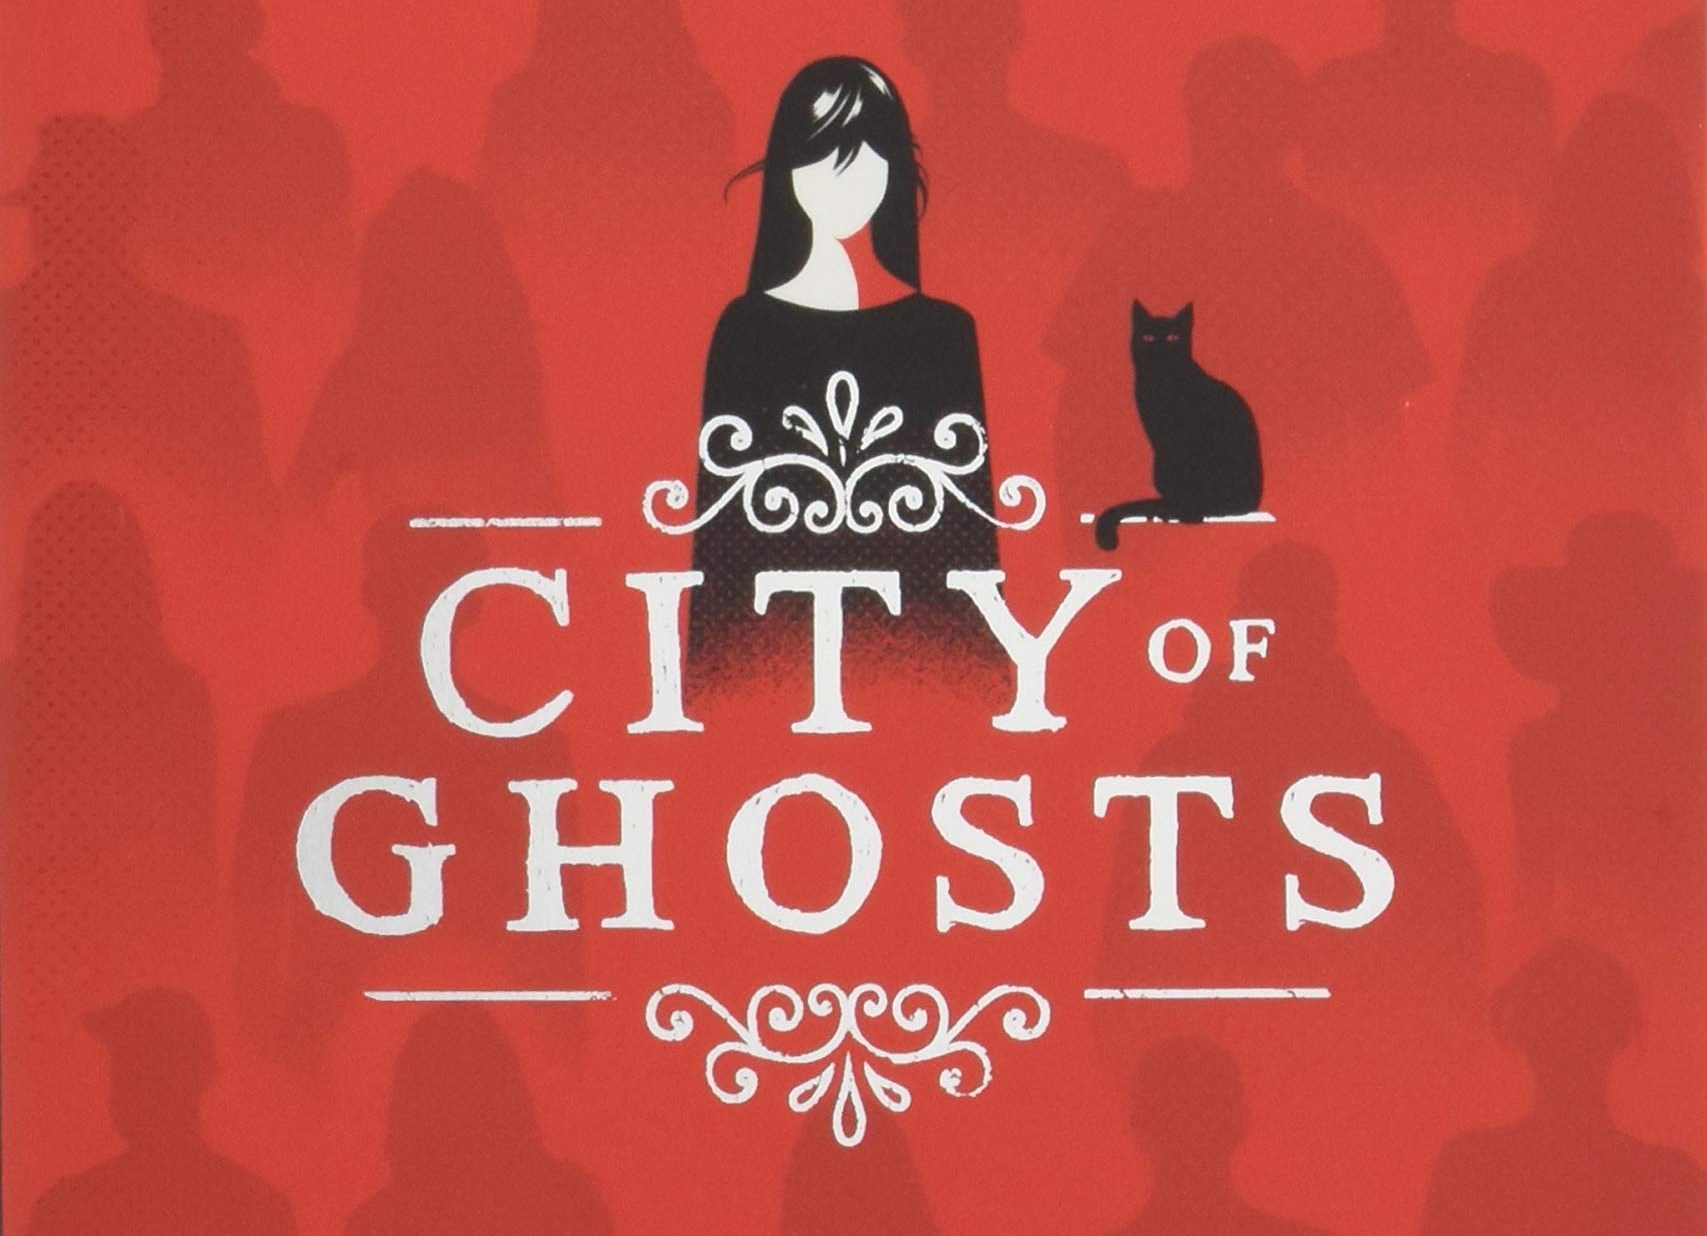 CW prepara adaptação do livro City of Ghosts, de Victoria Schwab